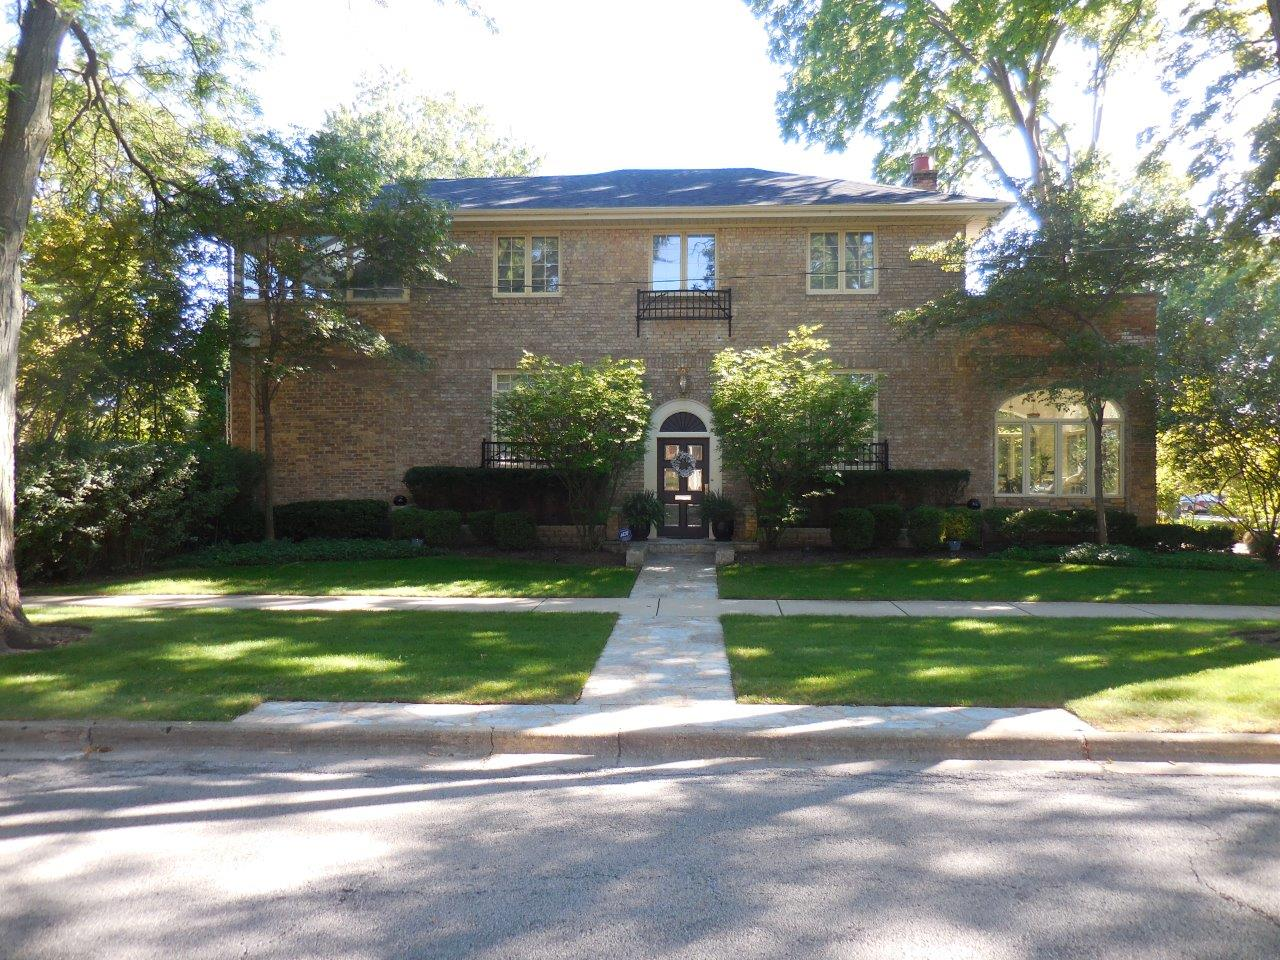 Hillary Rodham Clinton Childhood House In Park Ridge Illinois